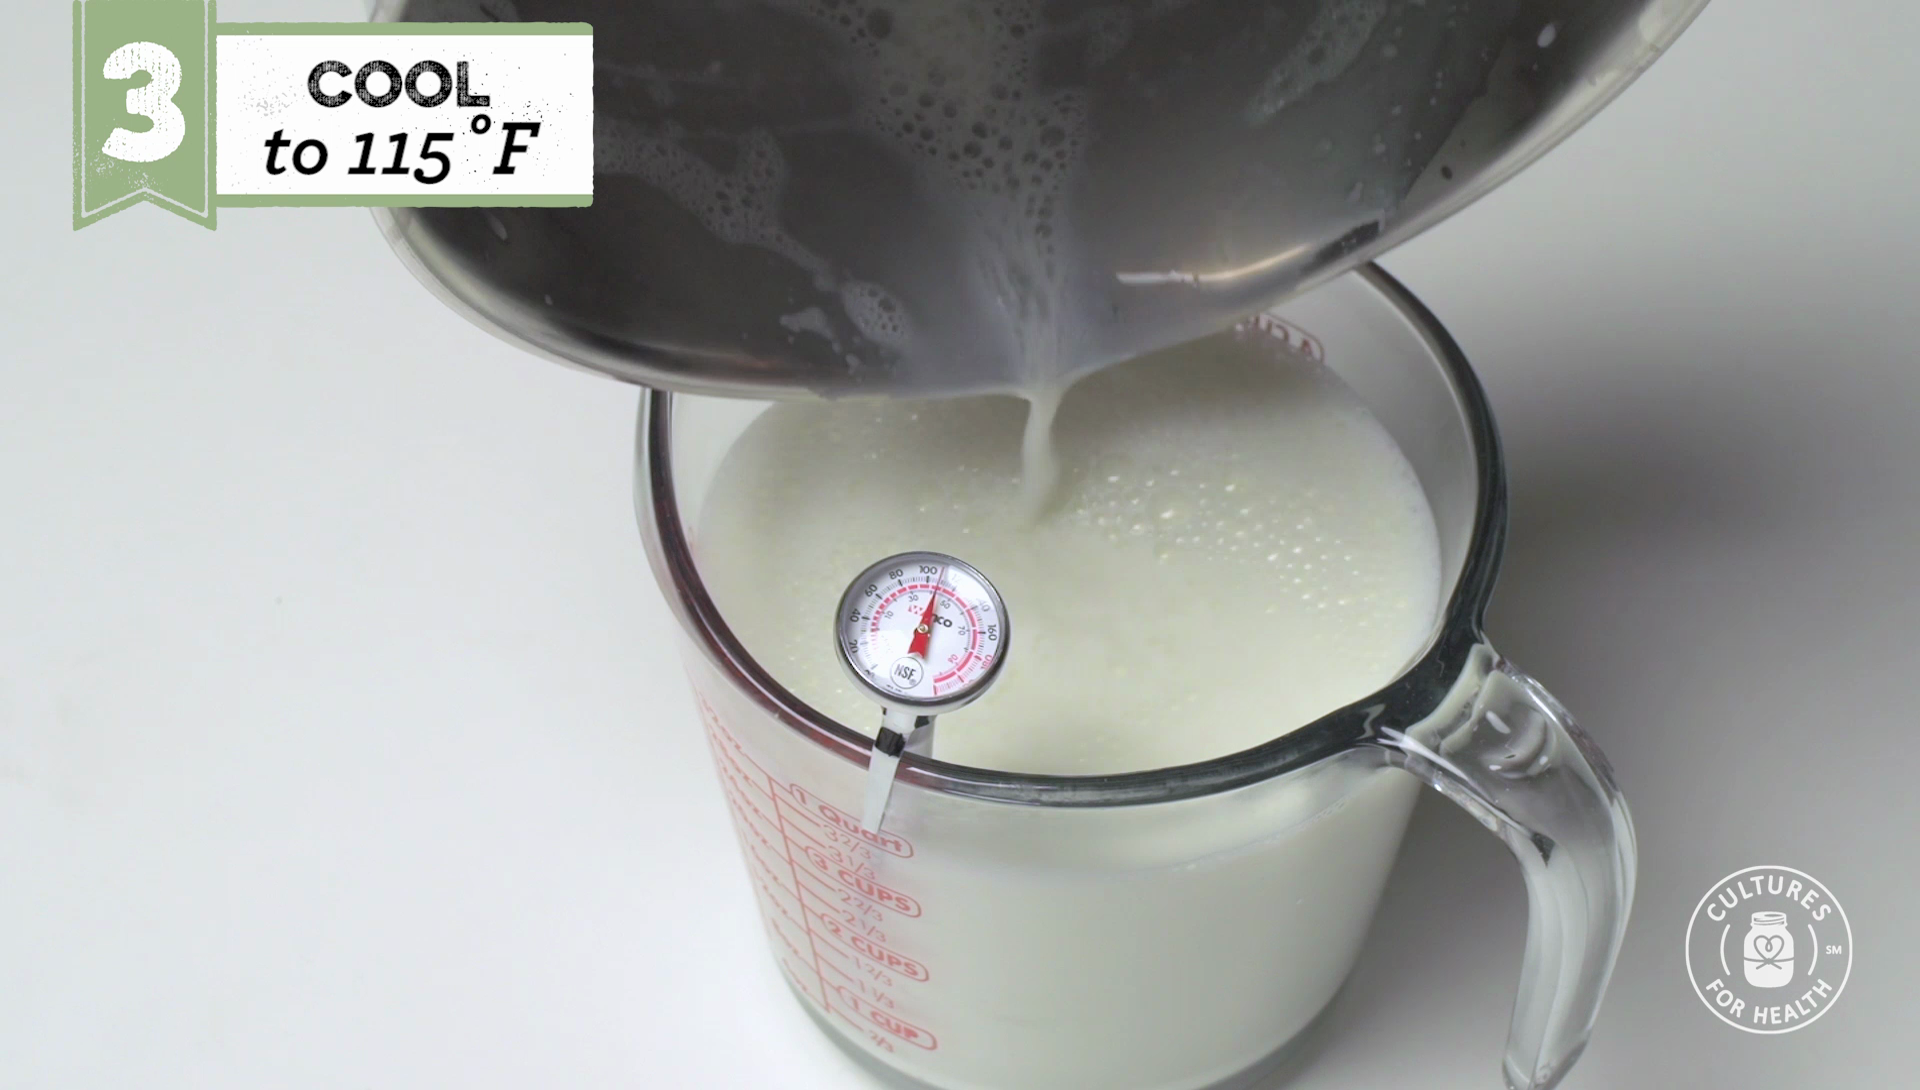 HOWTO VIDEO Making Traditional & Mild Flavor Yogurt at